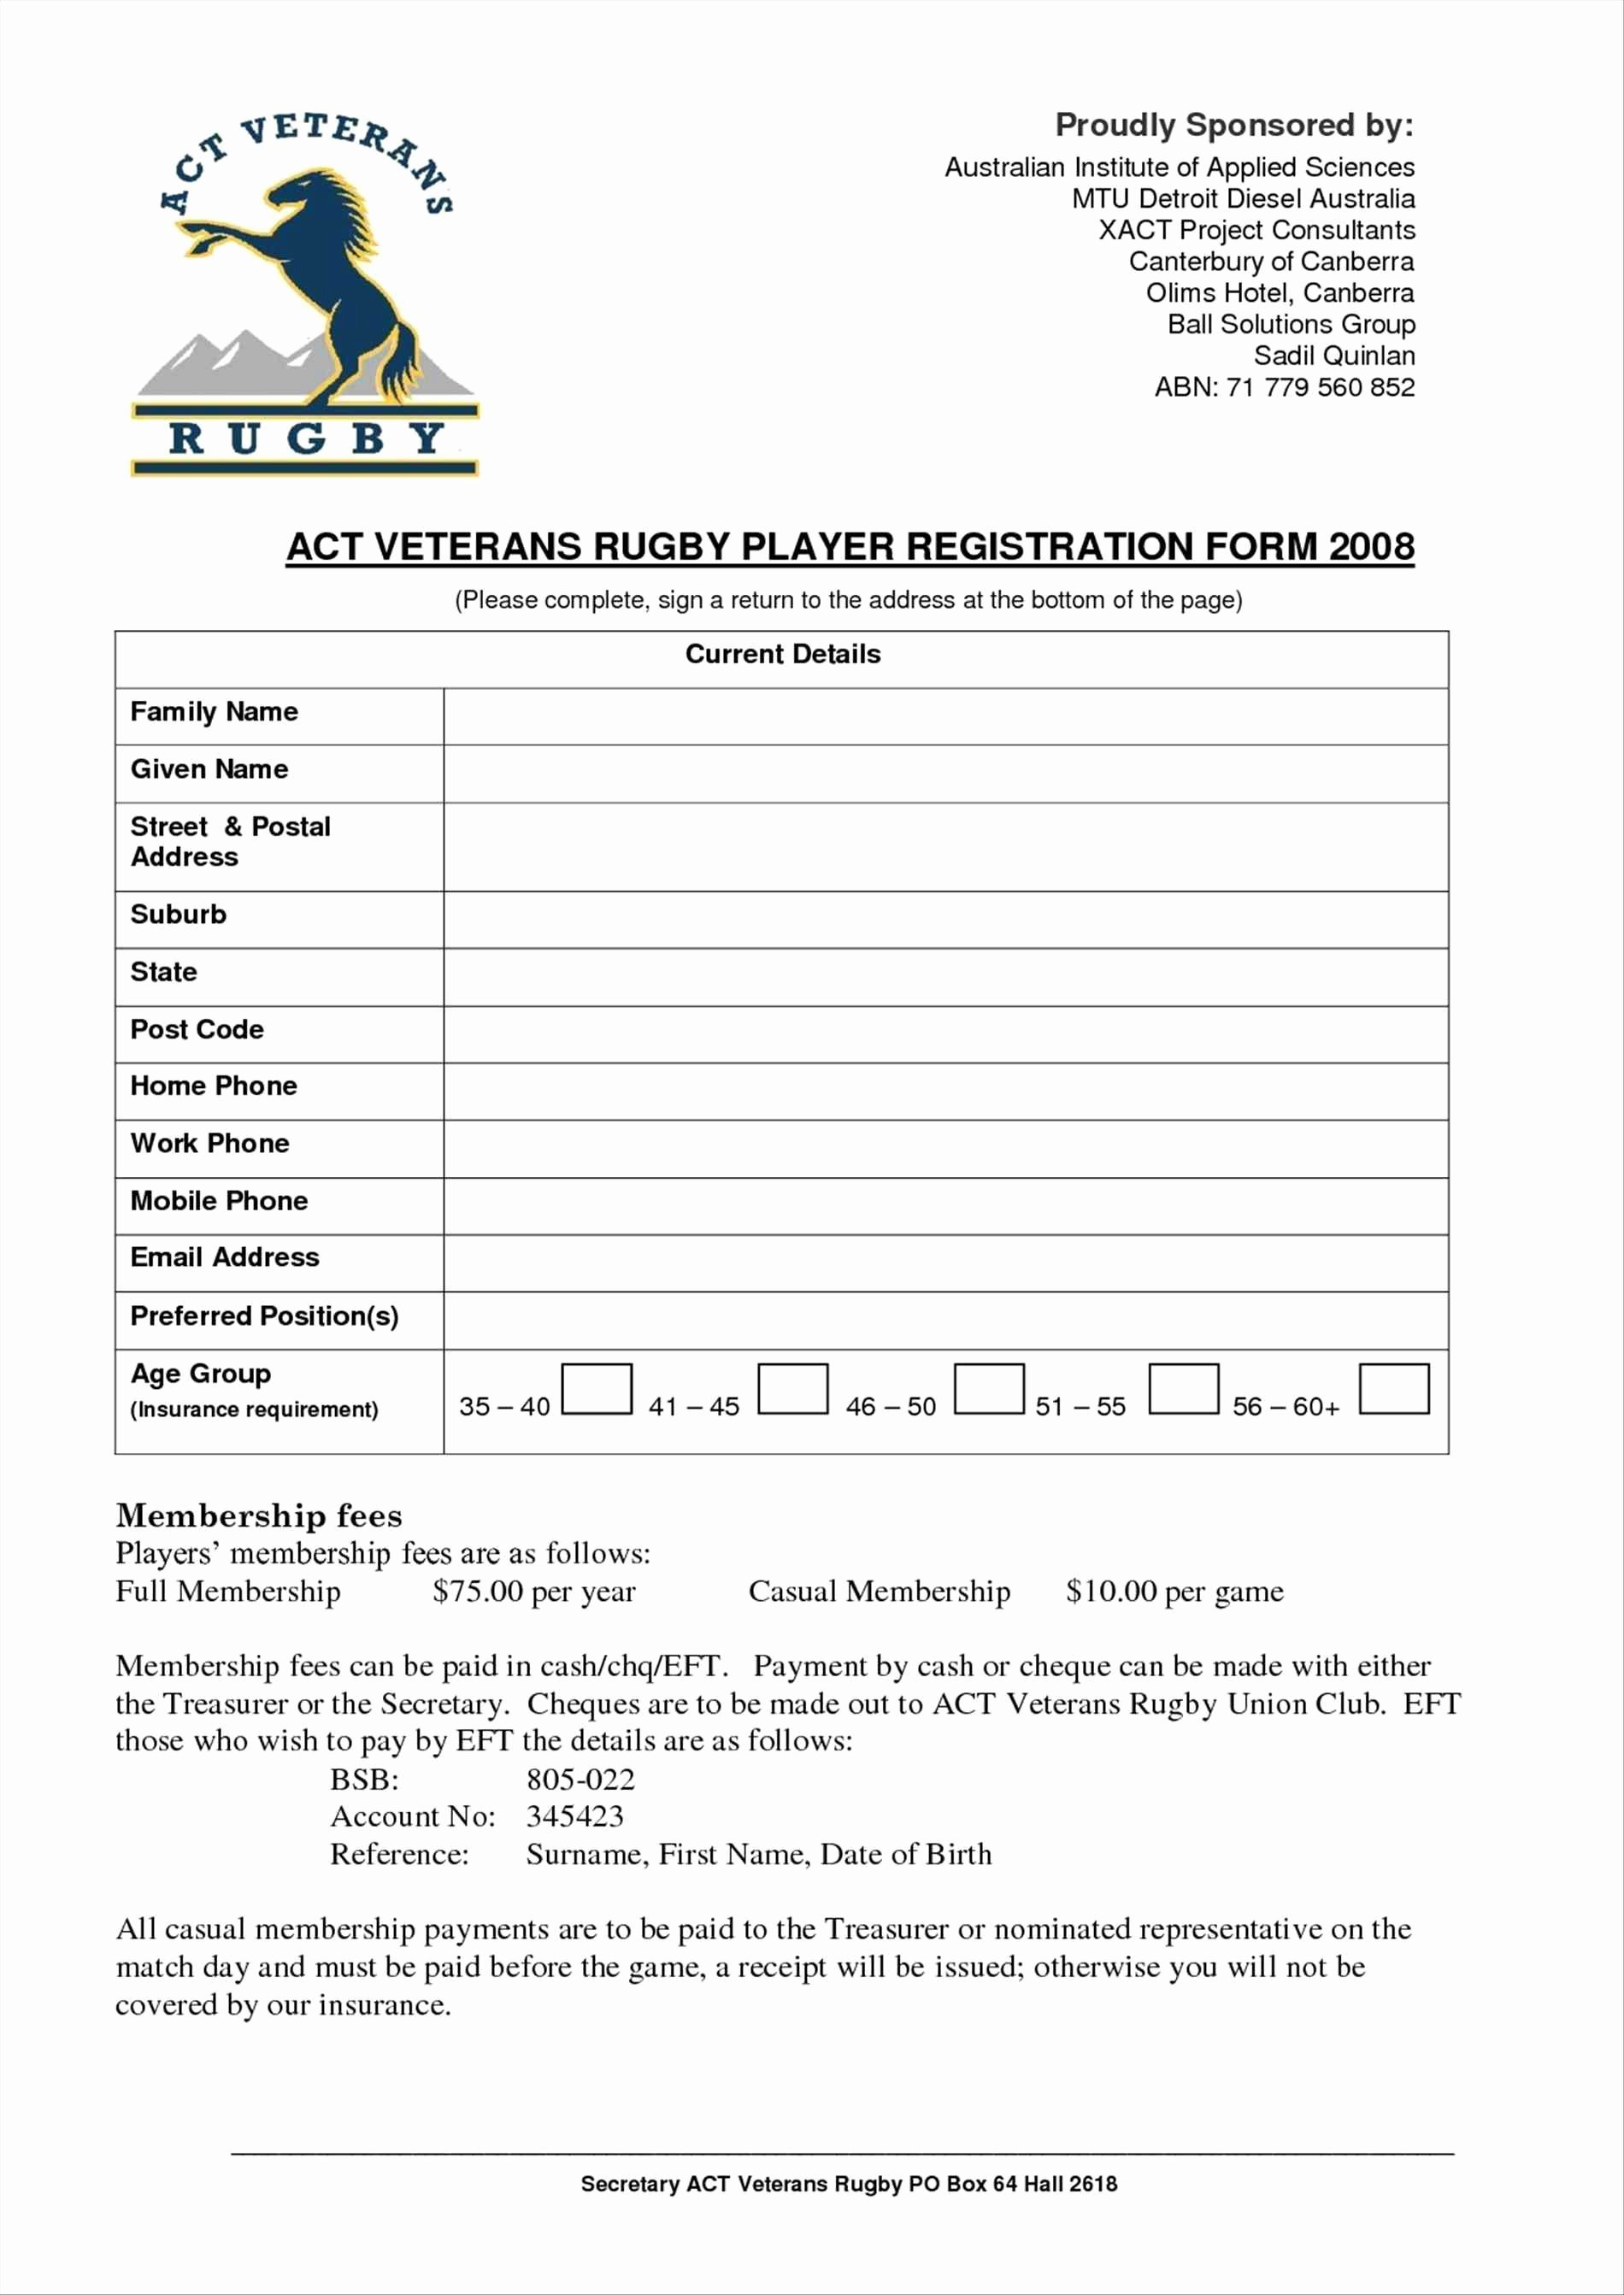 Free Registration form Template Luxury Free Registration form Template Word